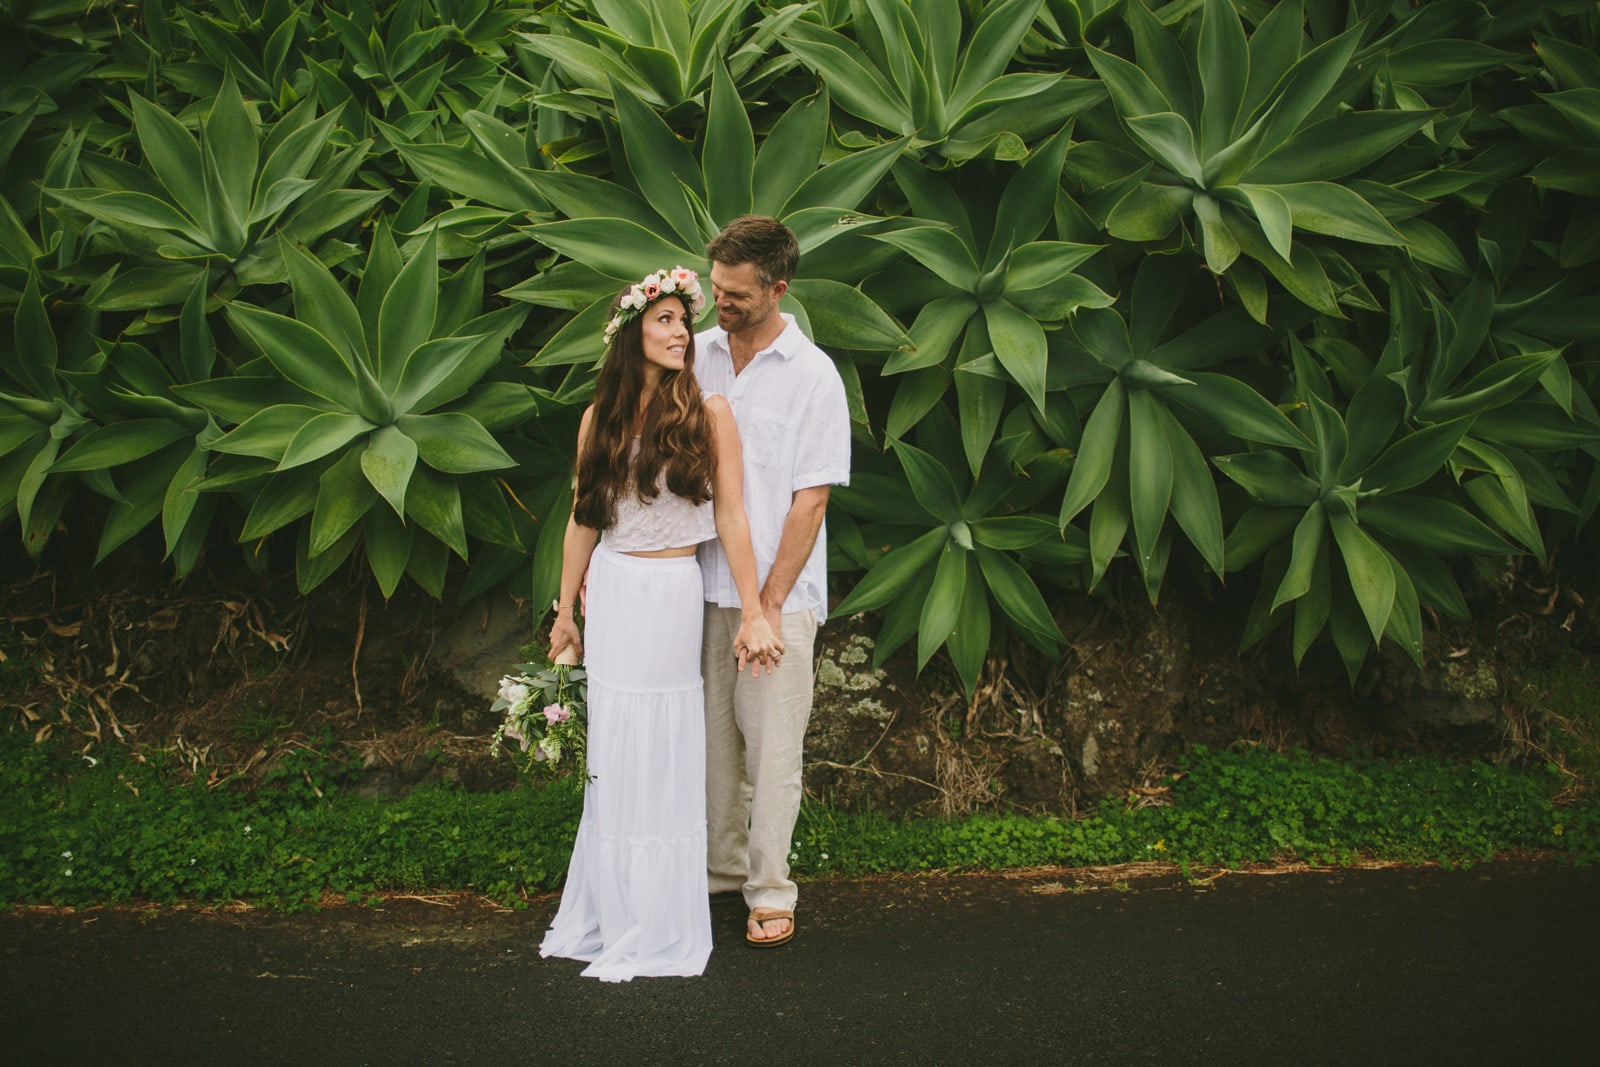 Maui_Wedding_Wailea_Kapalua_Hawaii_Photographer_023